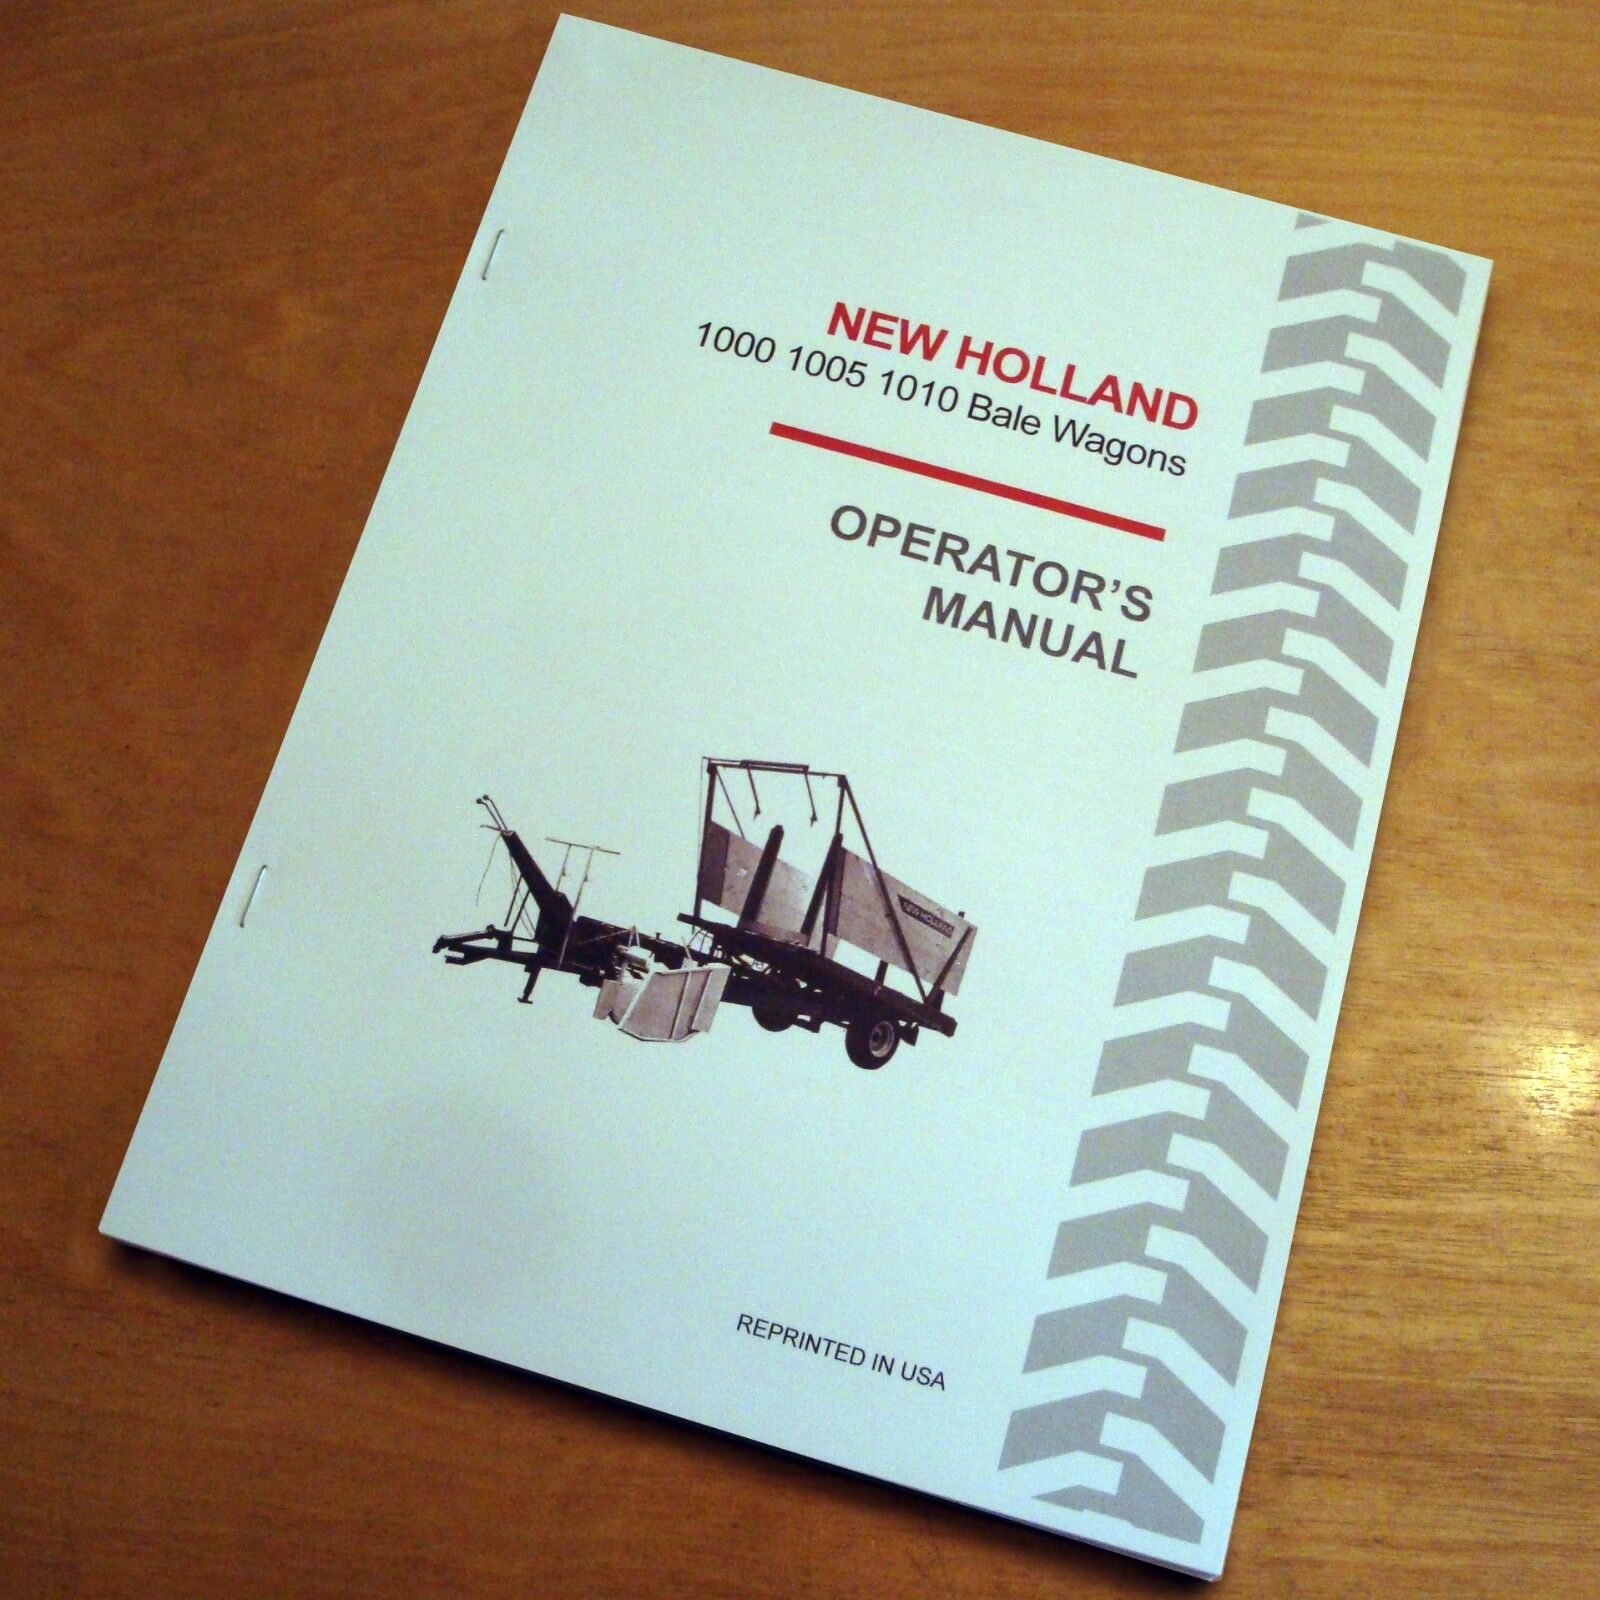 New Holland 1000 1005 1010 Bale Wagon Operator's Owners Book Guide Manual  NH 1 of 7FREE Shipping ...